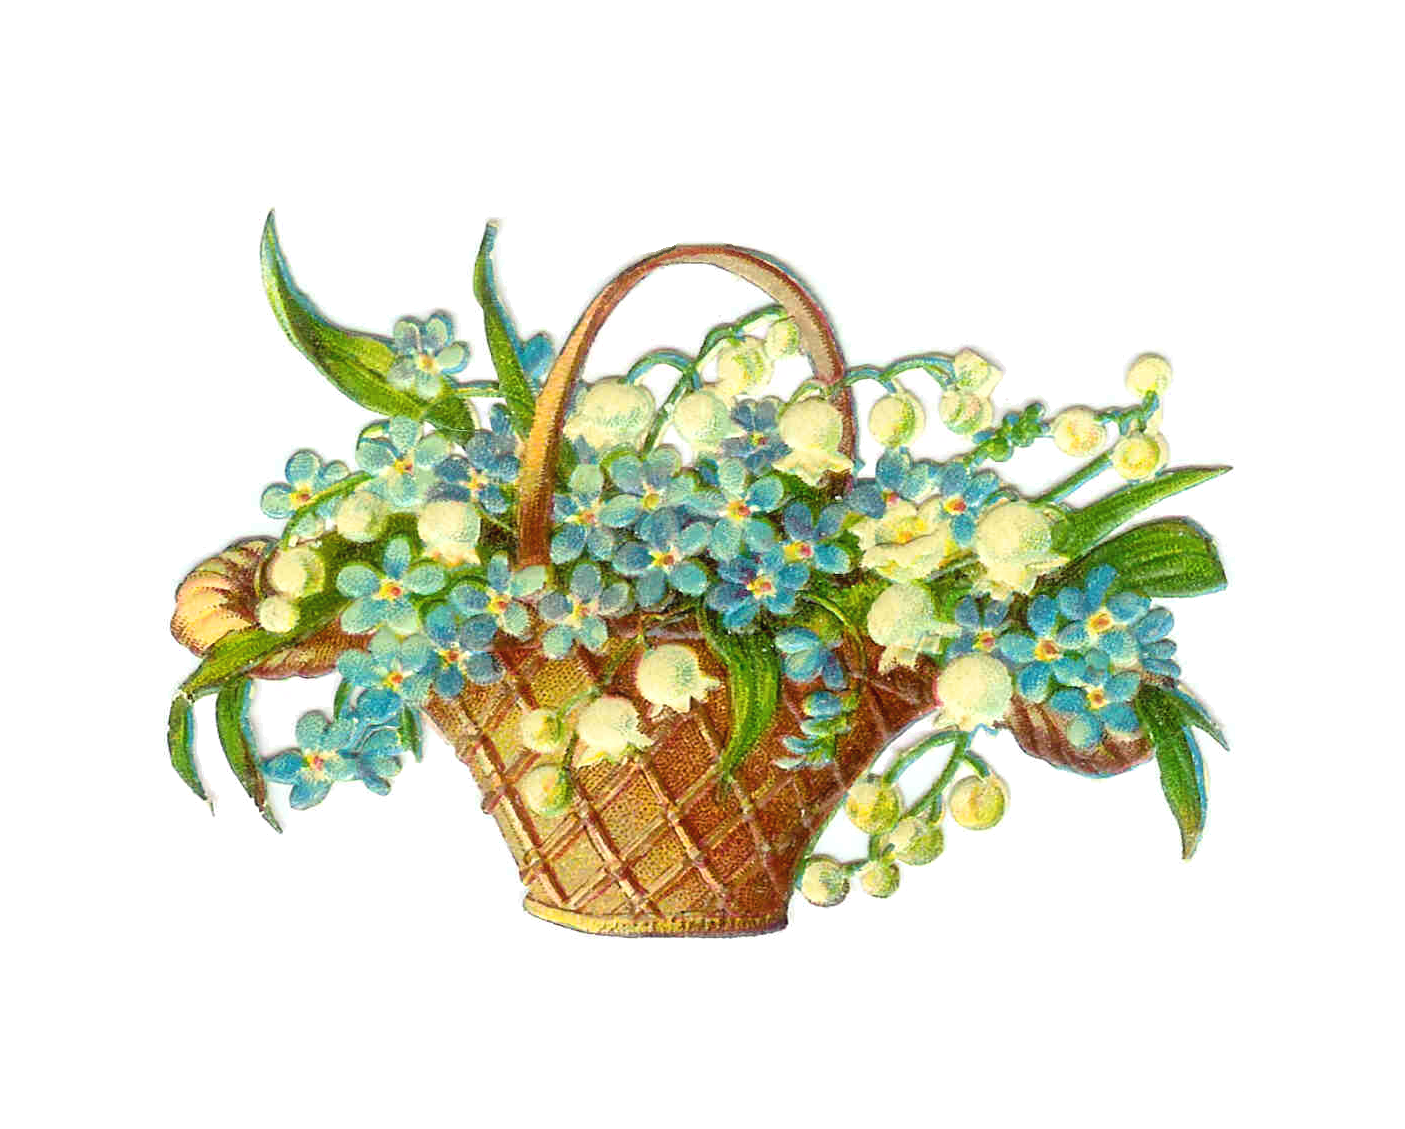 clip art for easter baskets - photo #47